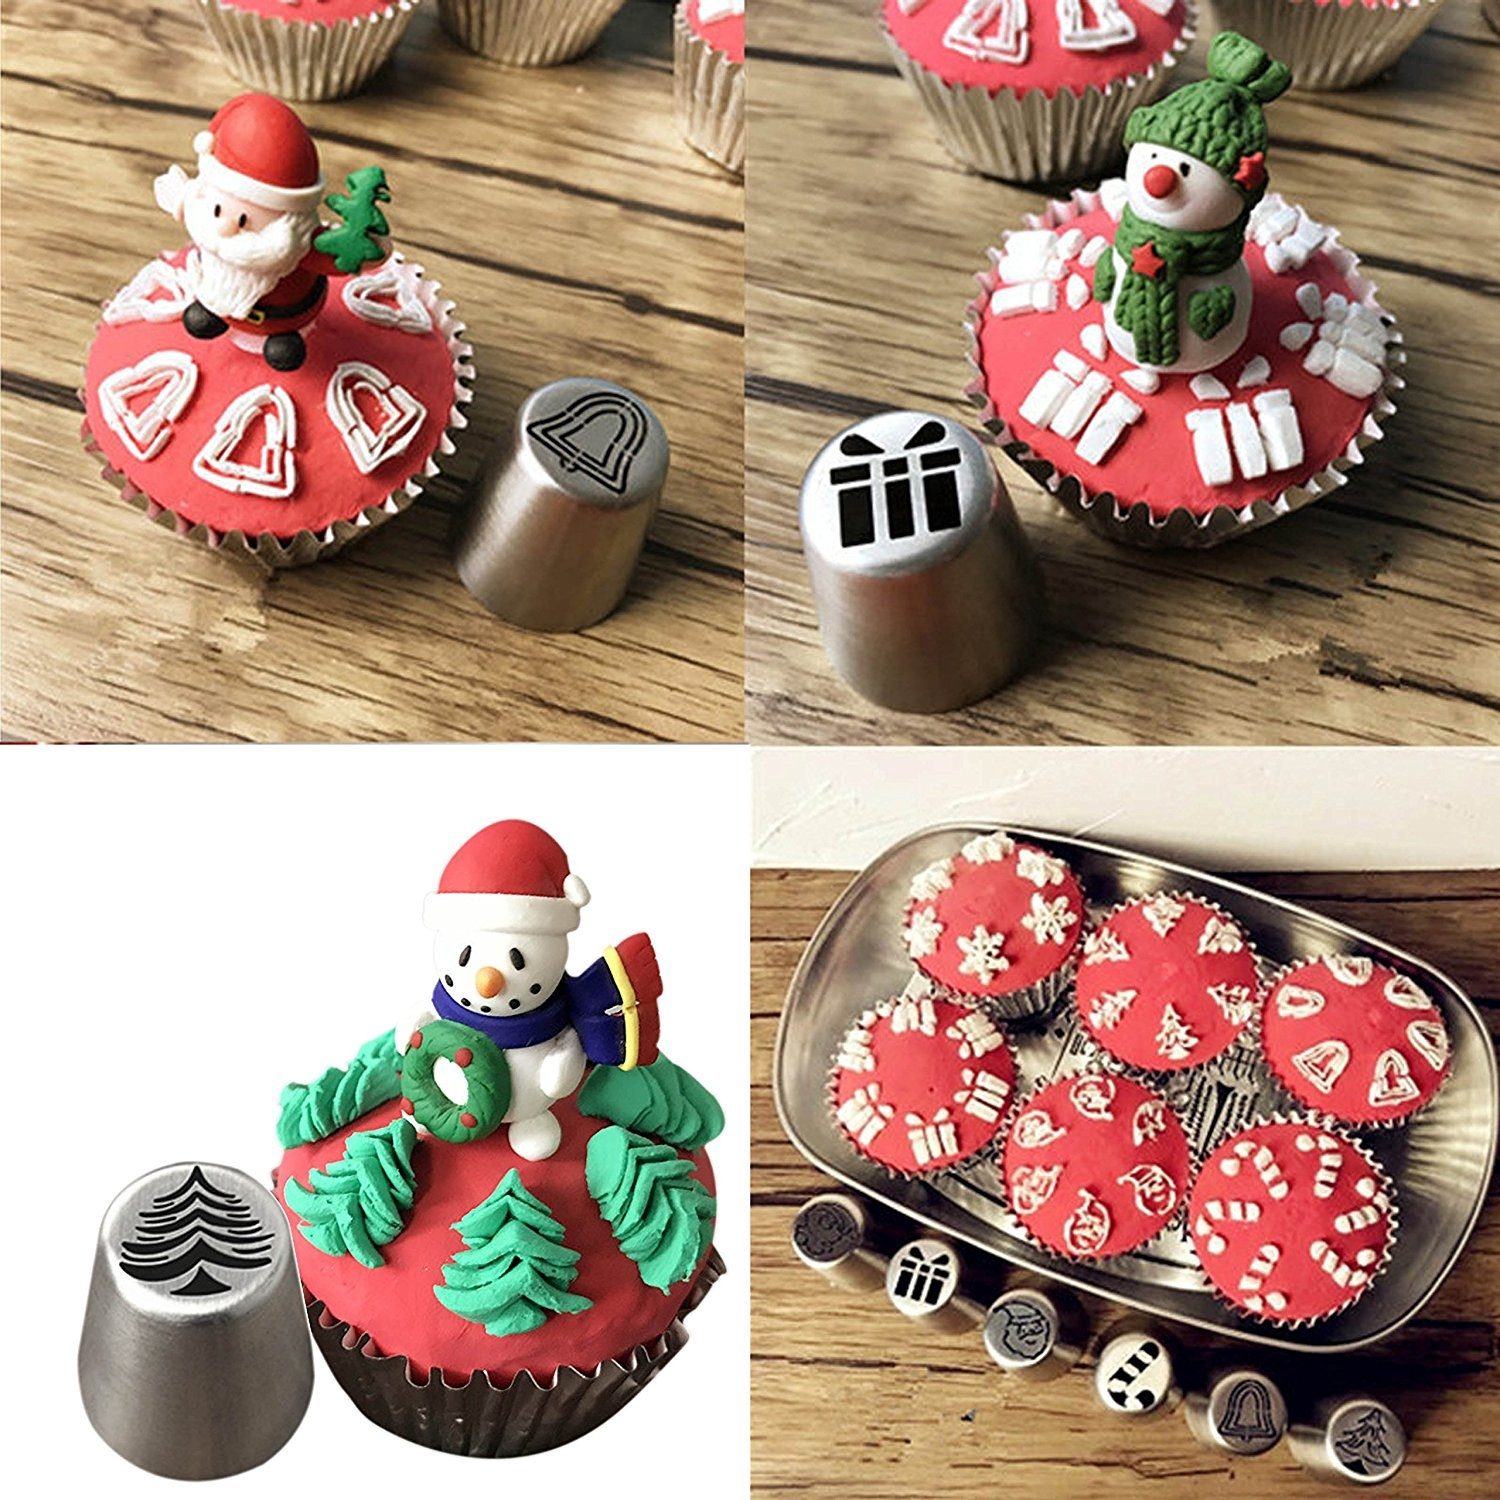 Image result for Christmas Pastry Cake Nozzles